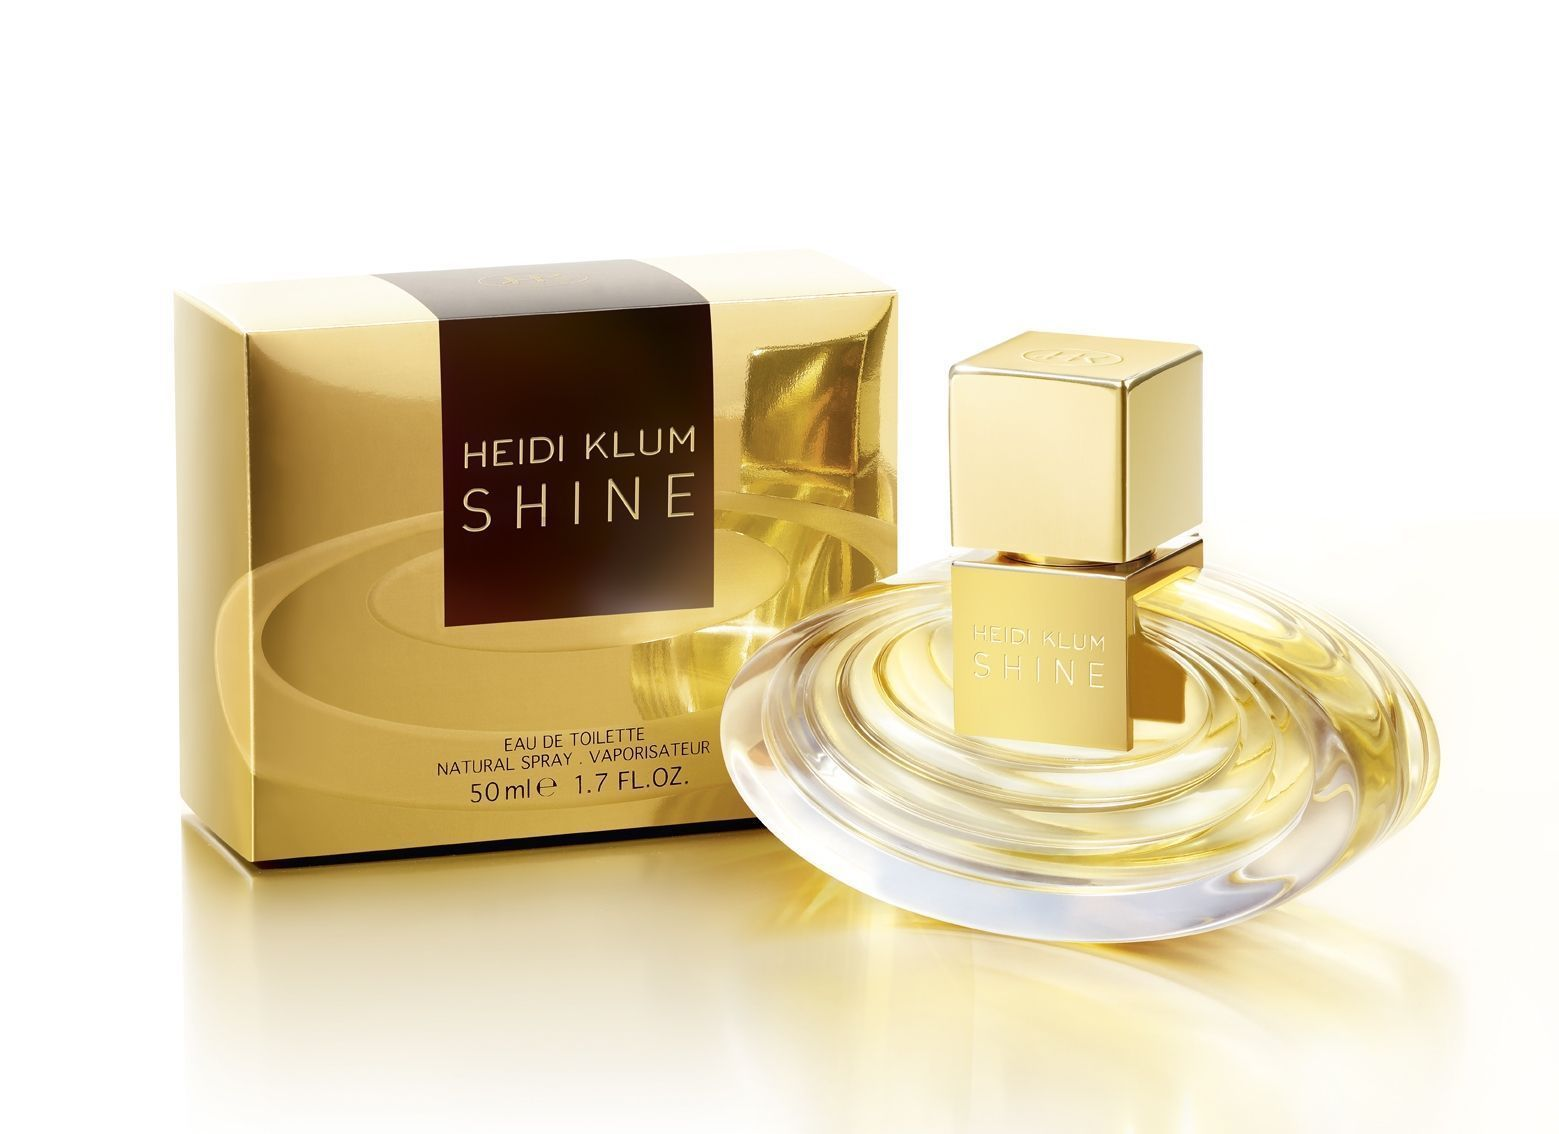 COTY*1.7oz Bottle HEIDI KLUM SHINE Fragrance EAU DE TOILETTE Natural Spray WOMEN